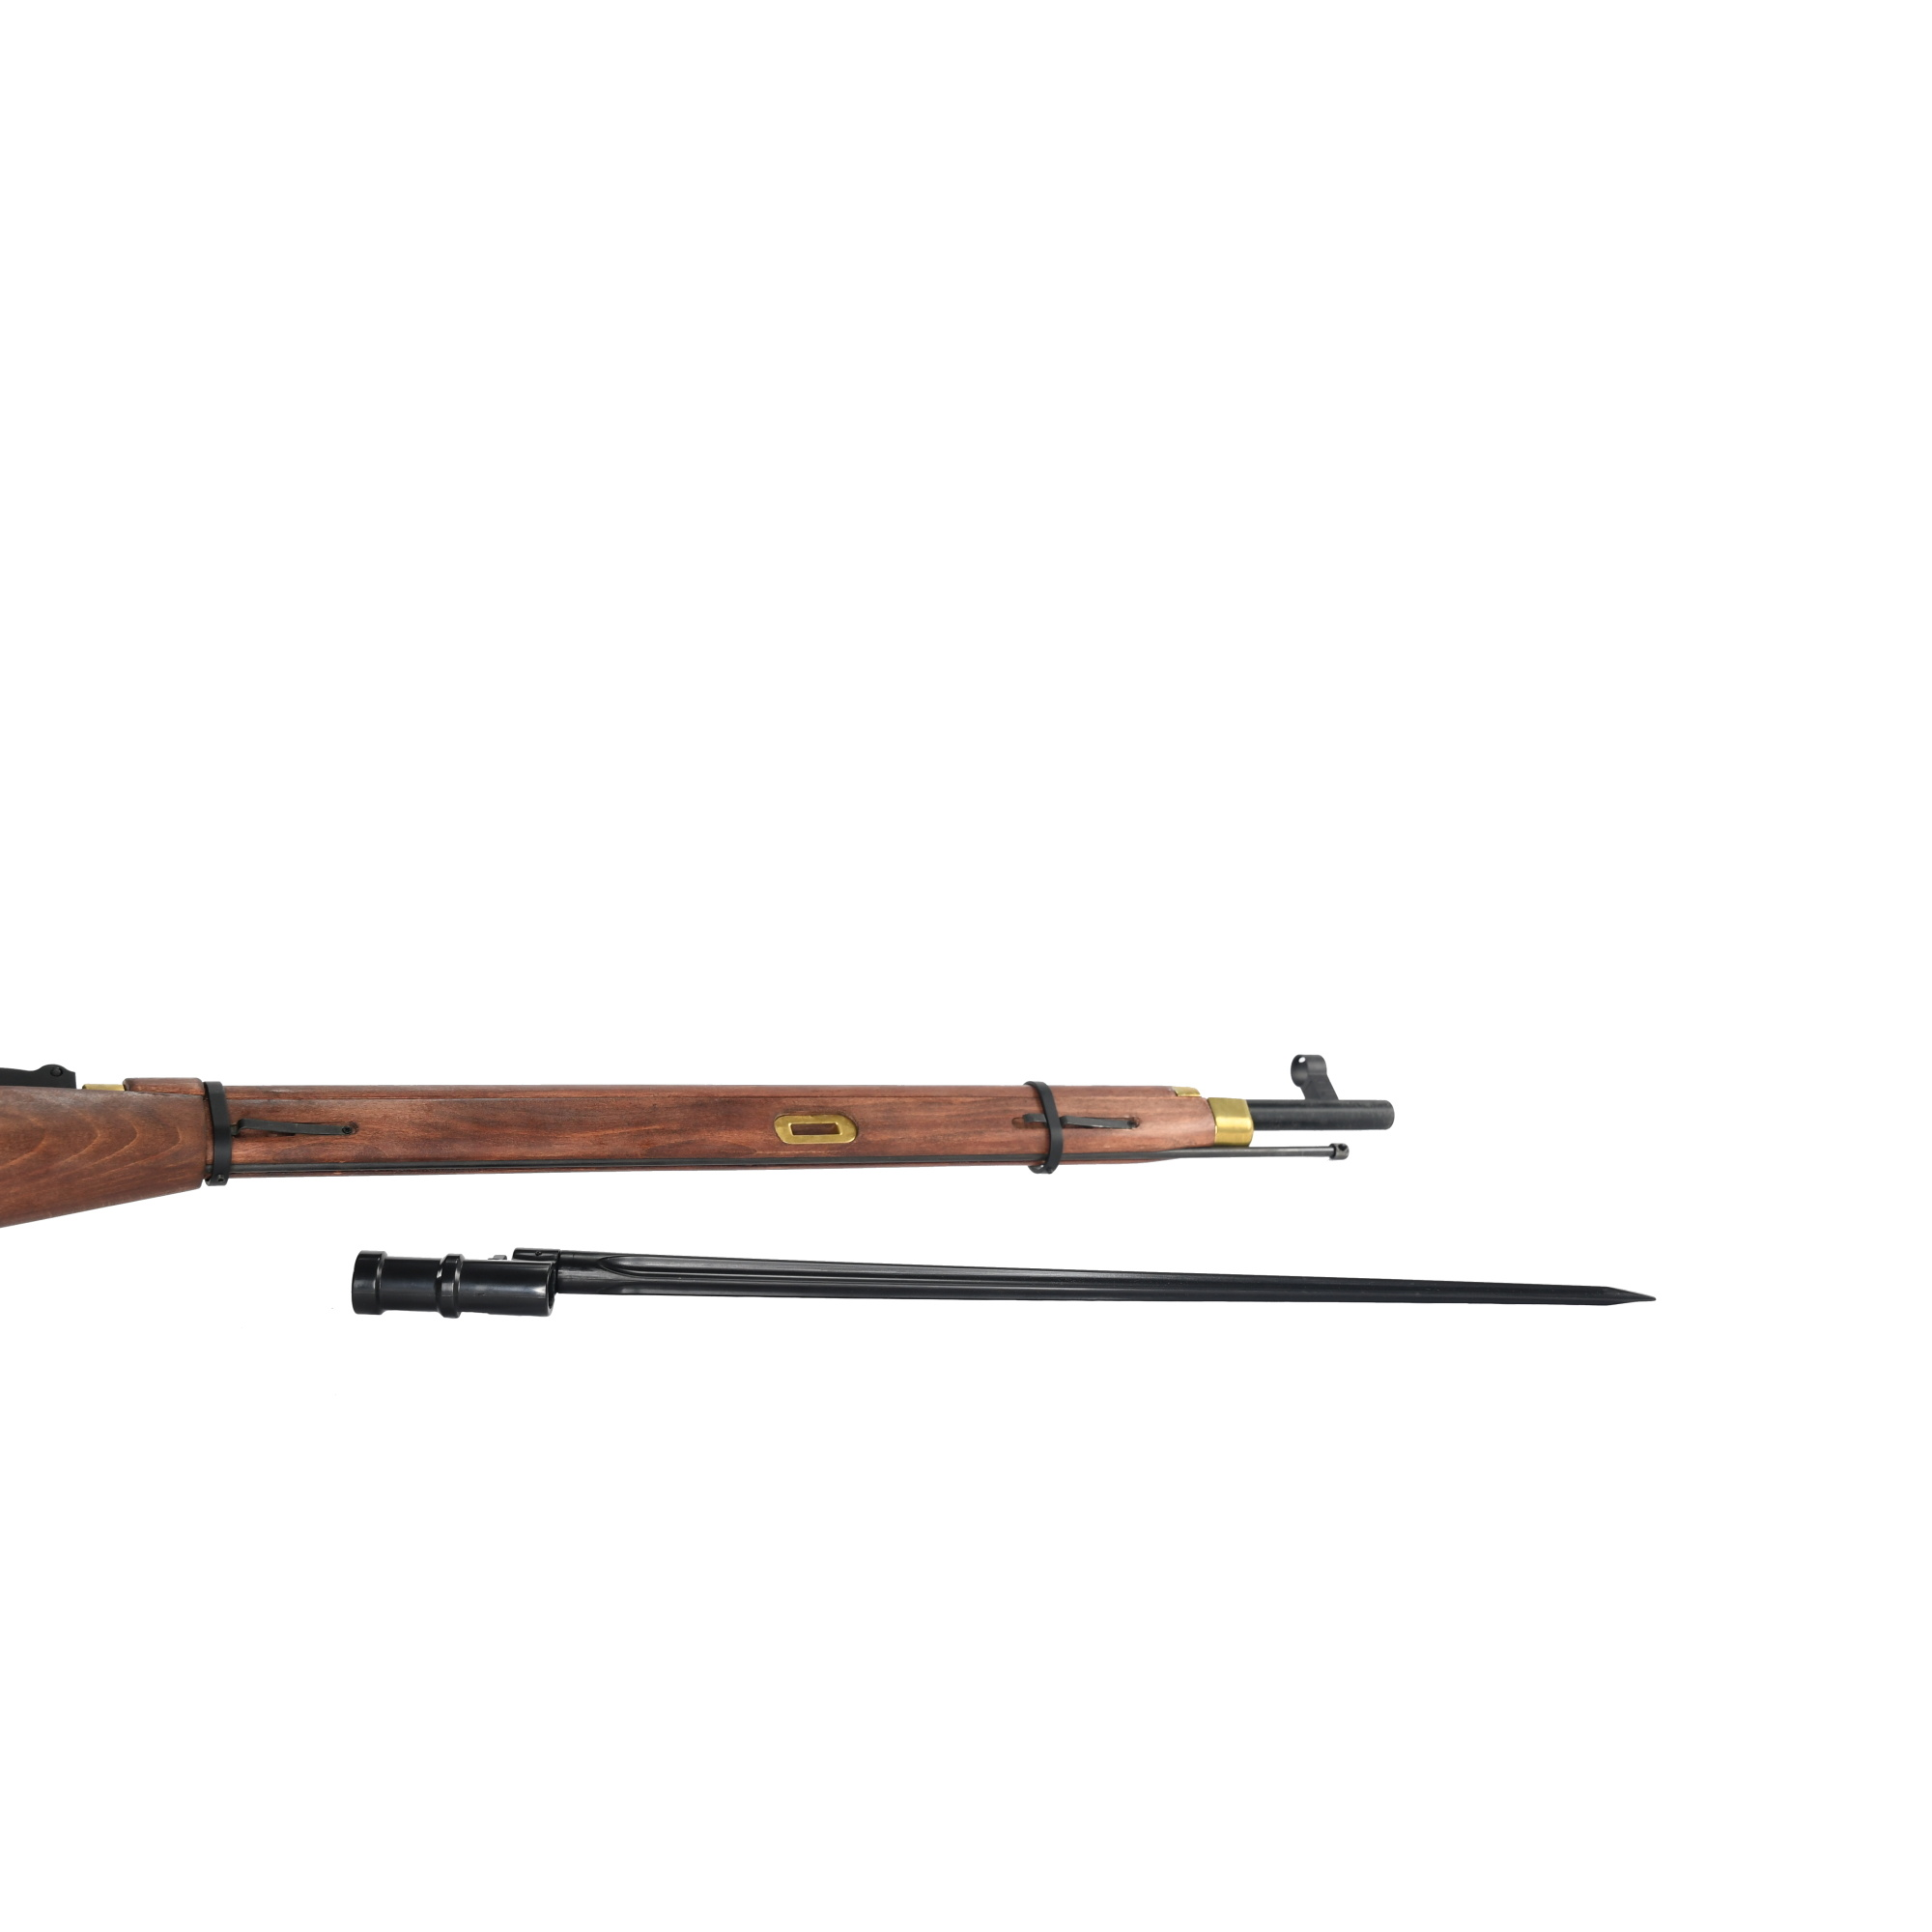 PPS AirSoft Mosin Nagant GBBR Sniper Rifle 1.88 Joule with Scope - real wood look